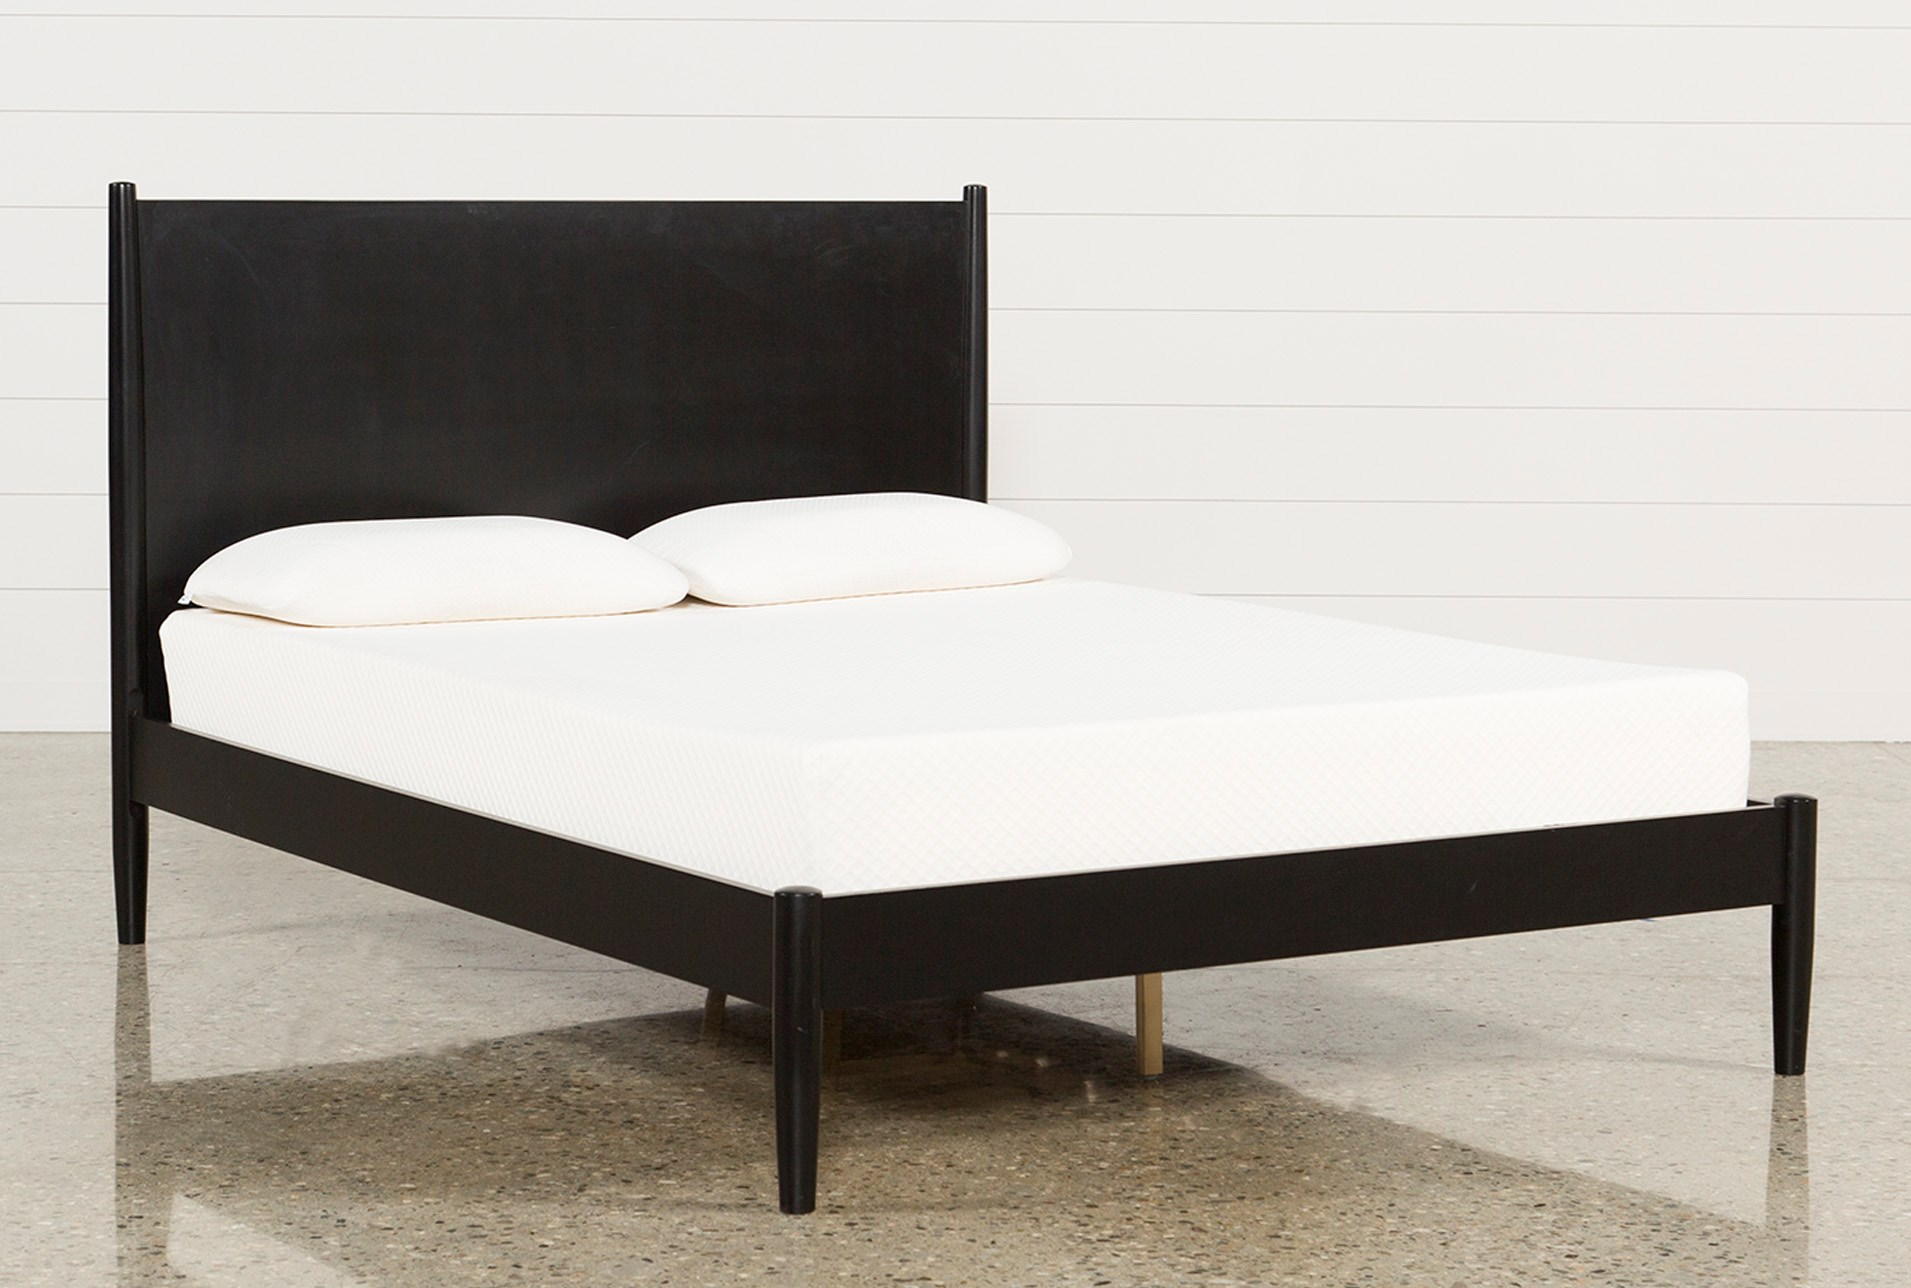 Alton black california king platform bed qty 1 has been successfully added to your cart